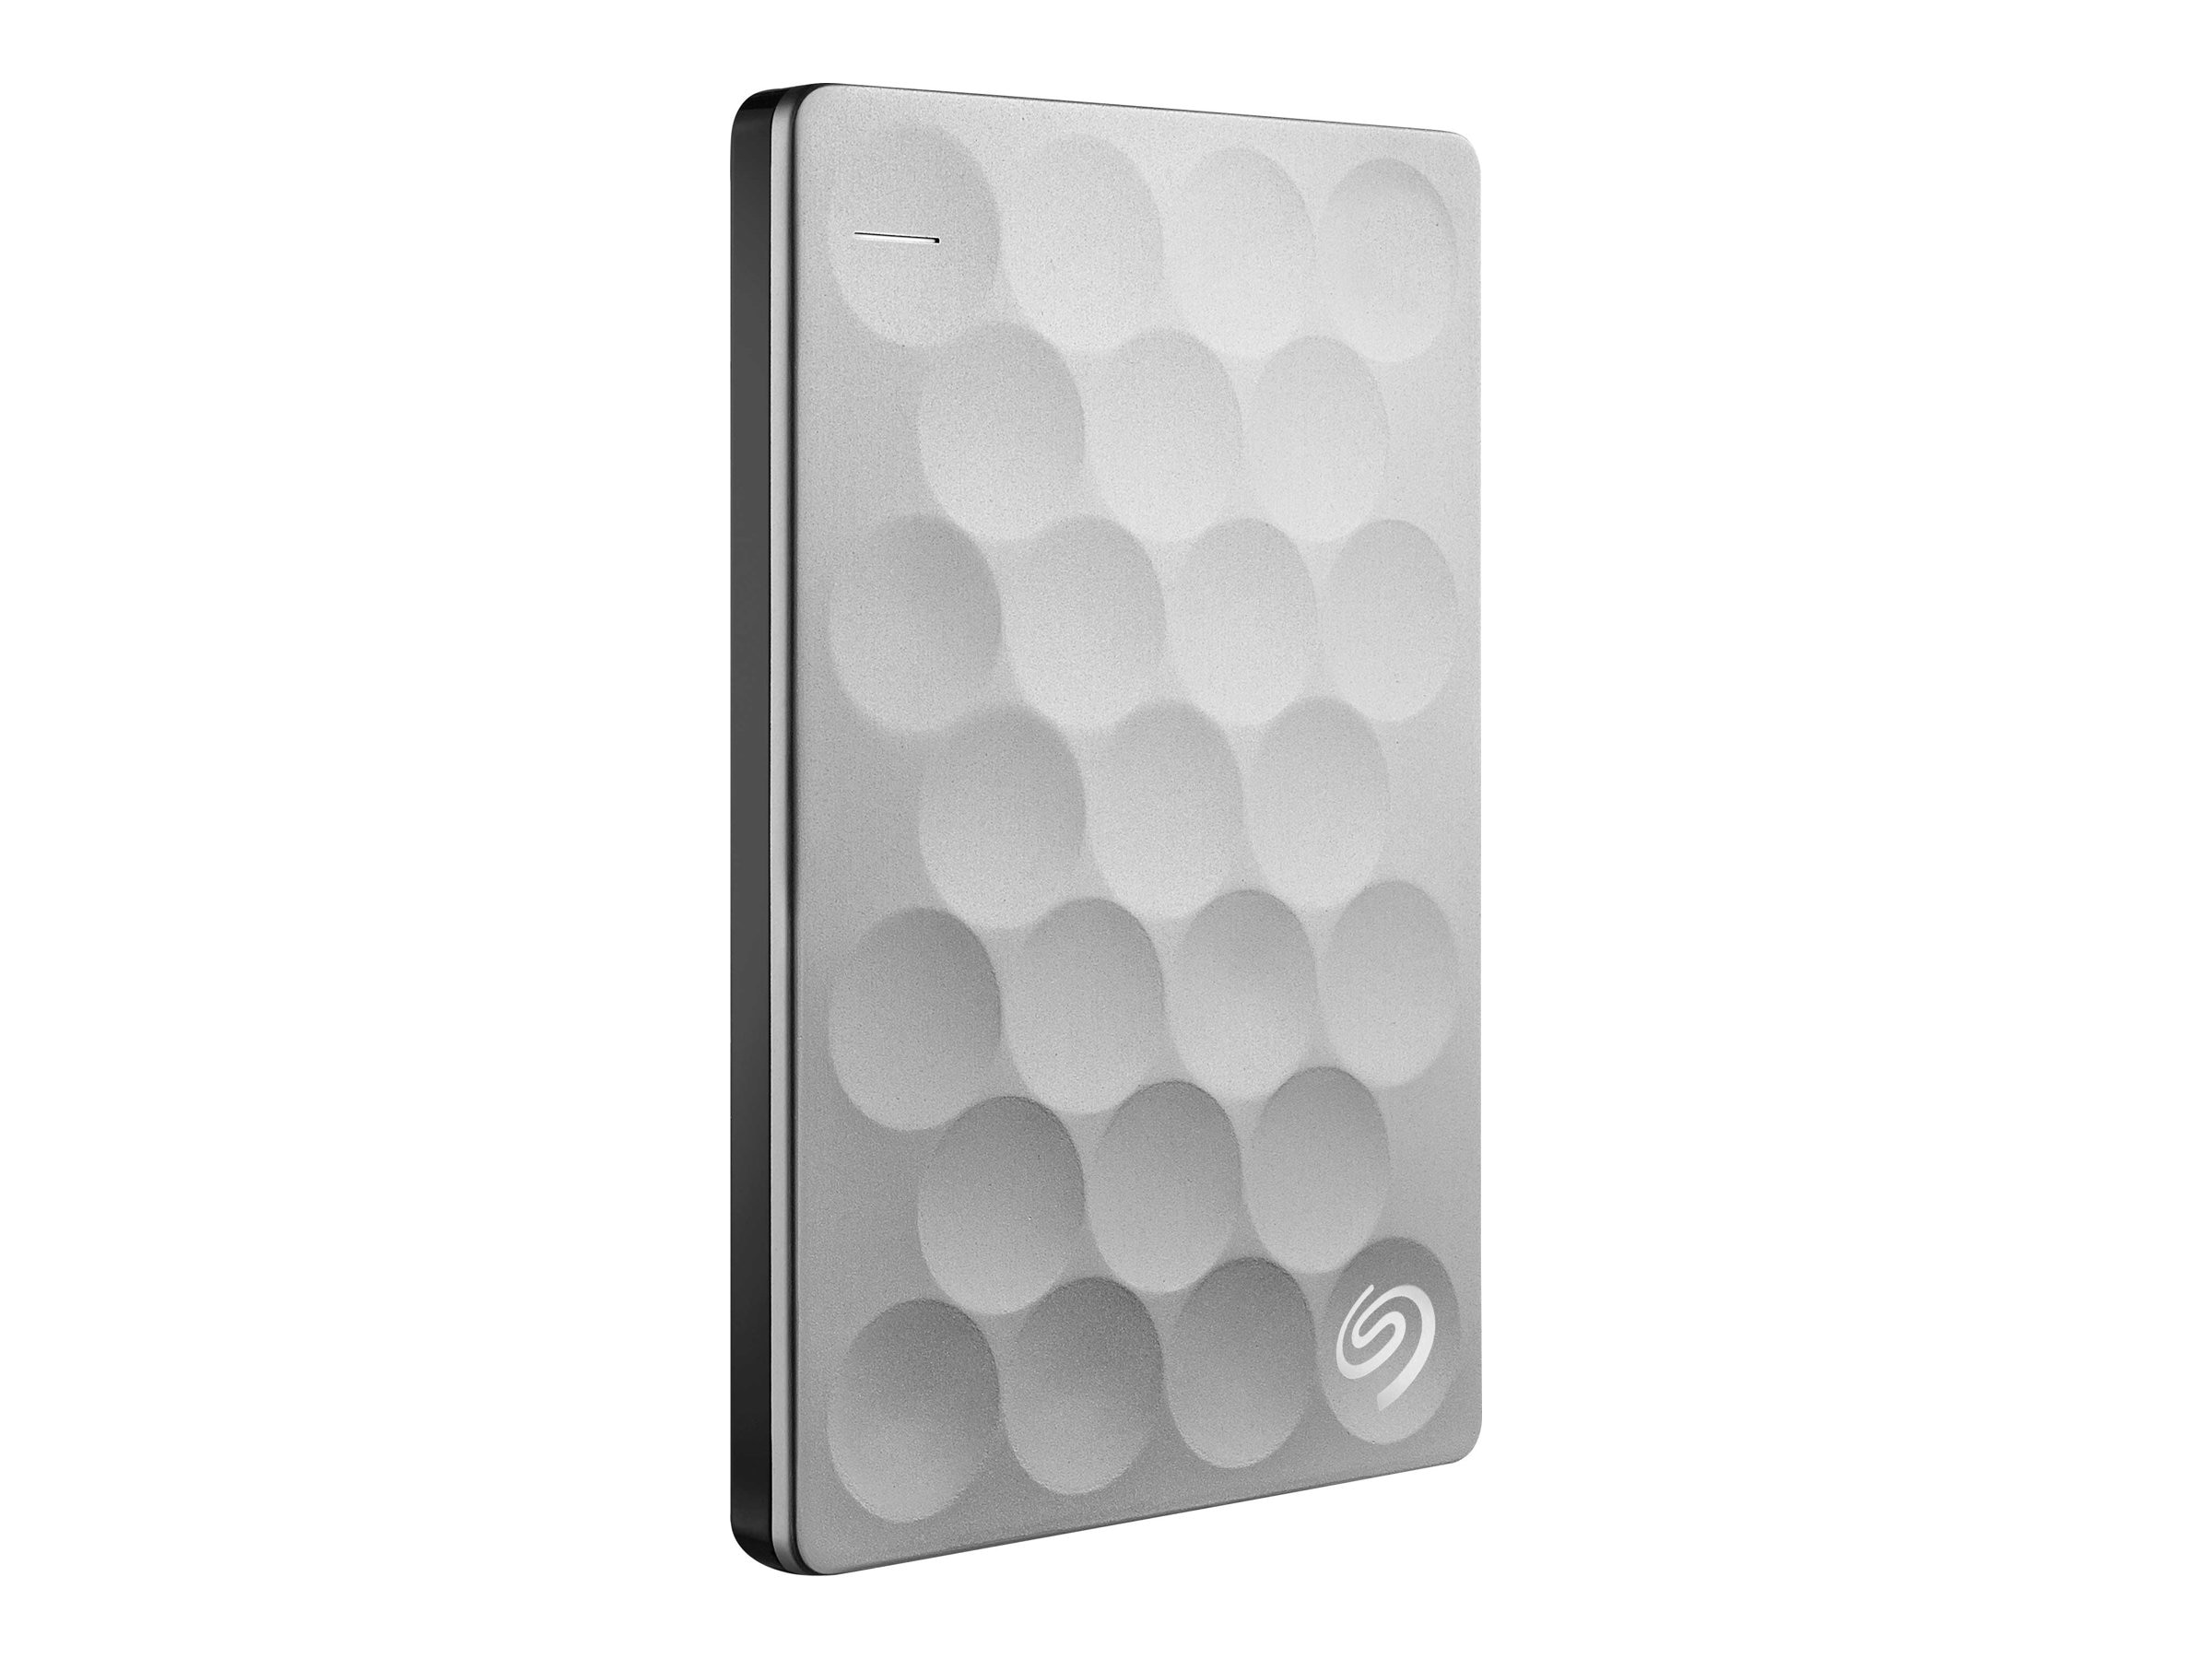 Seagate Technology STEH2000100 Image 1